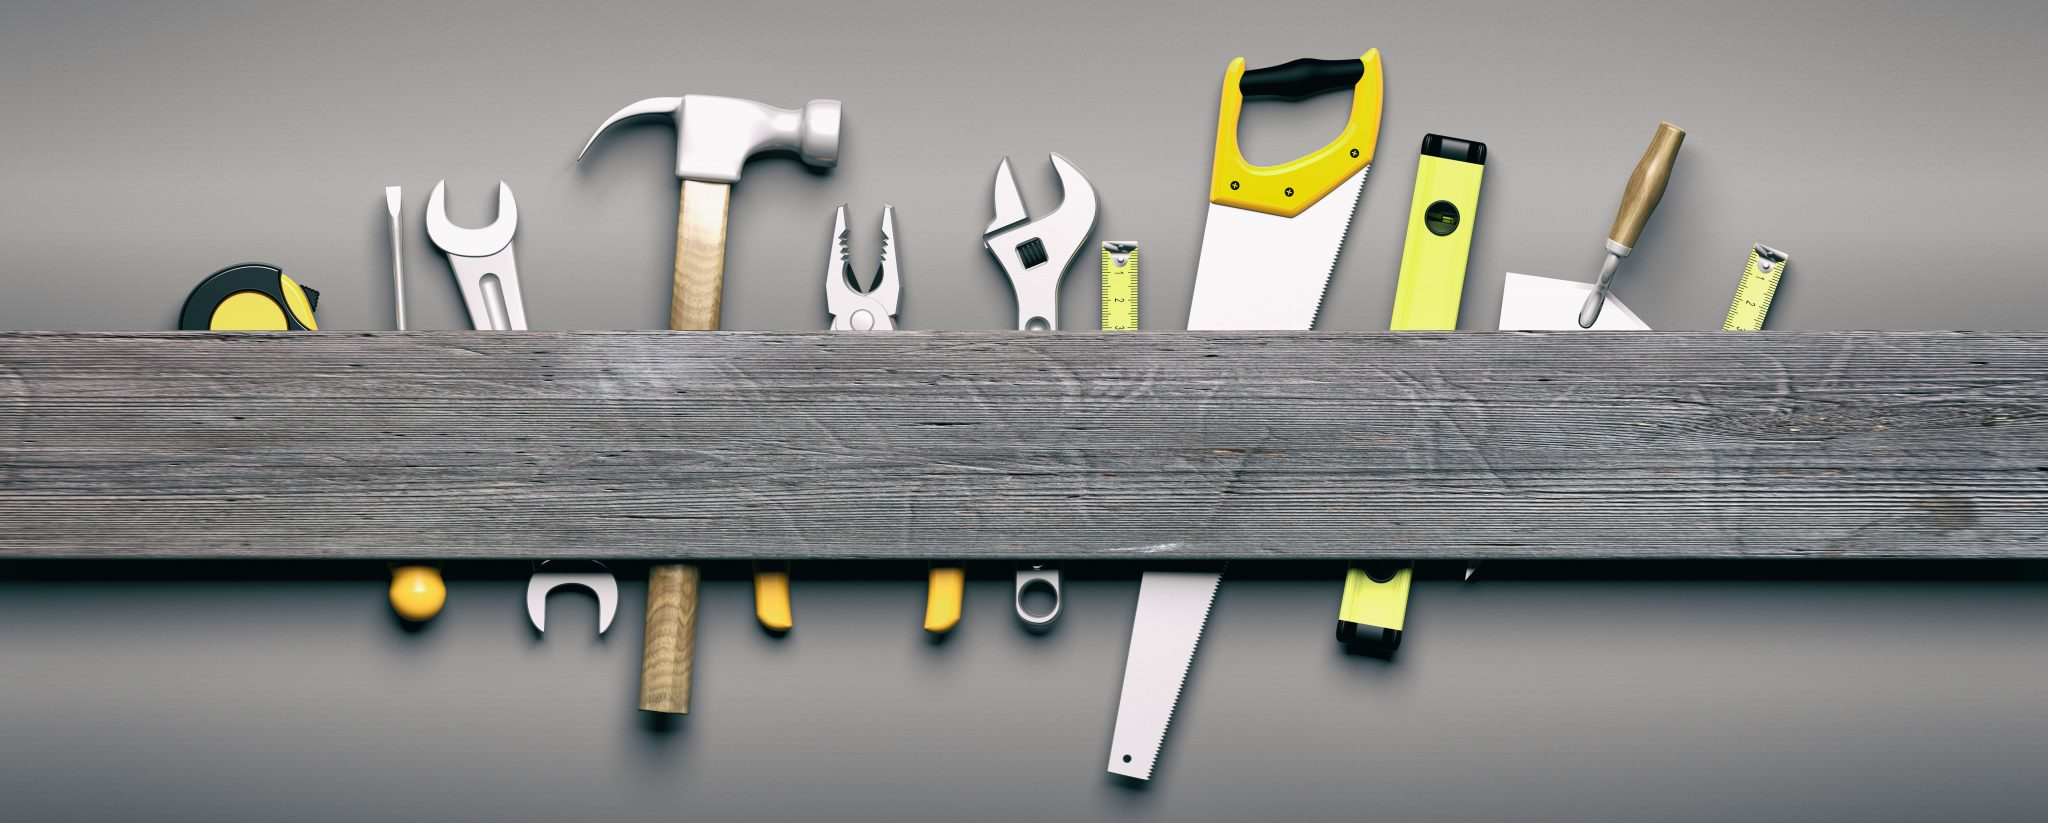 A Selection of Tools On A Shelf